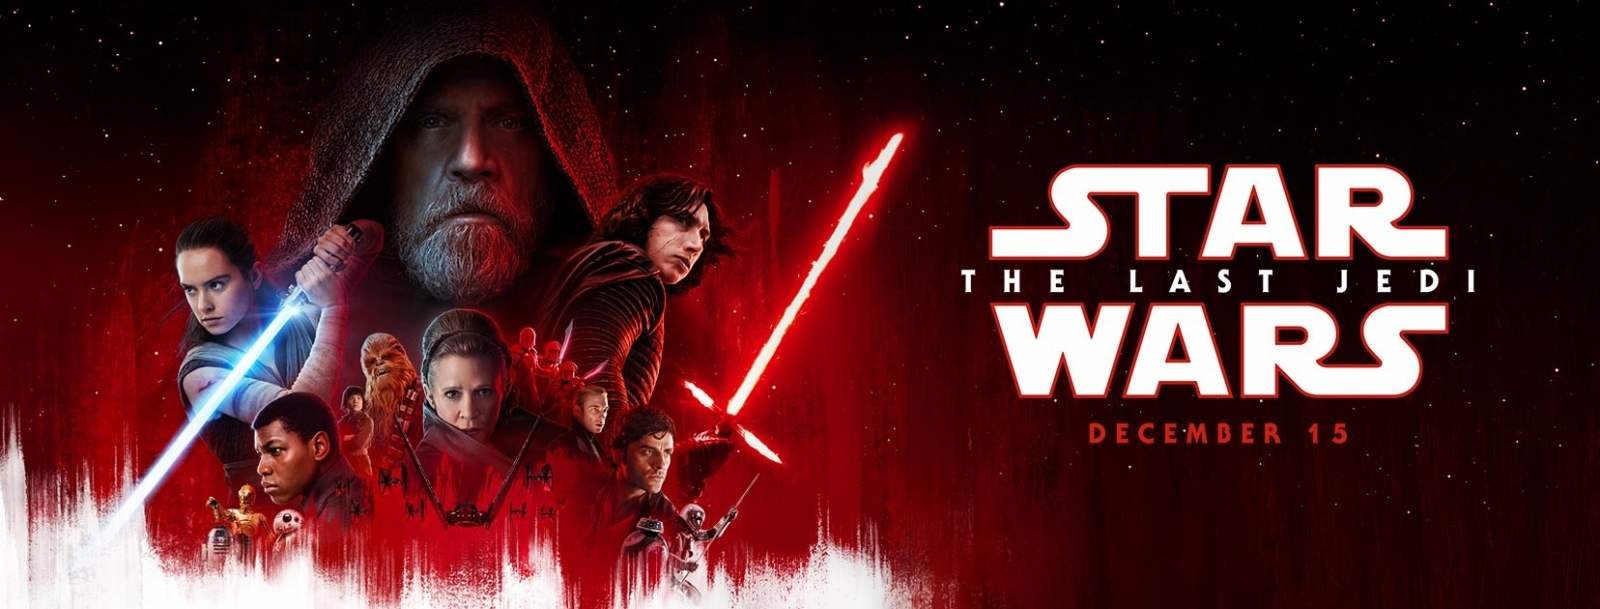 Star wars the last jedi essay